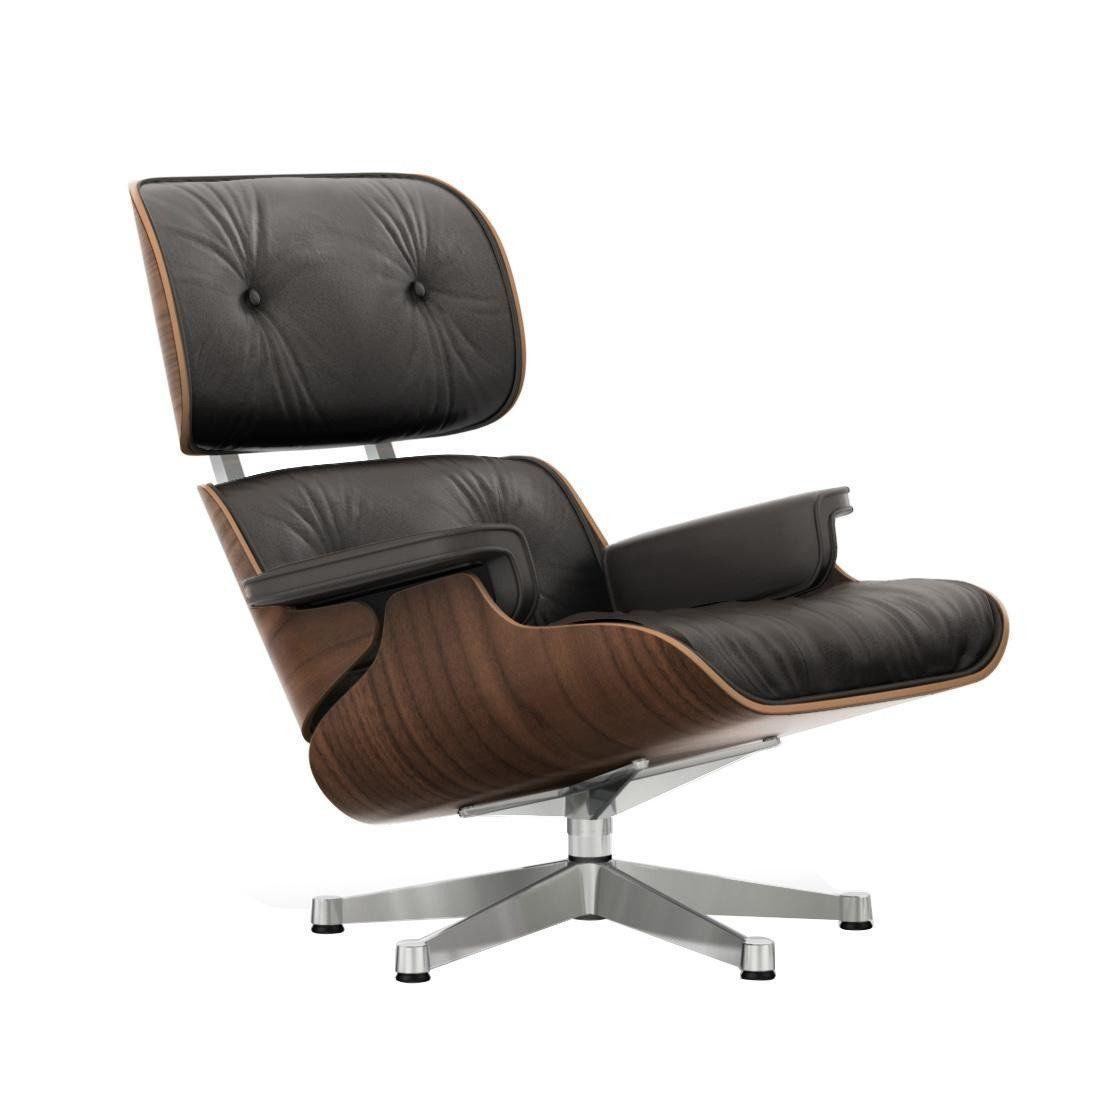 Eames Lounge Sessel Eames Lounge Chair Drehsessel Vitra Ambientedirect